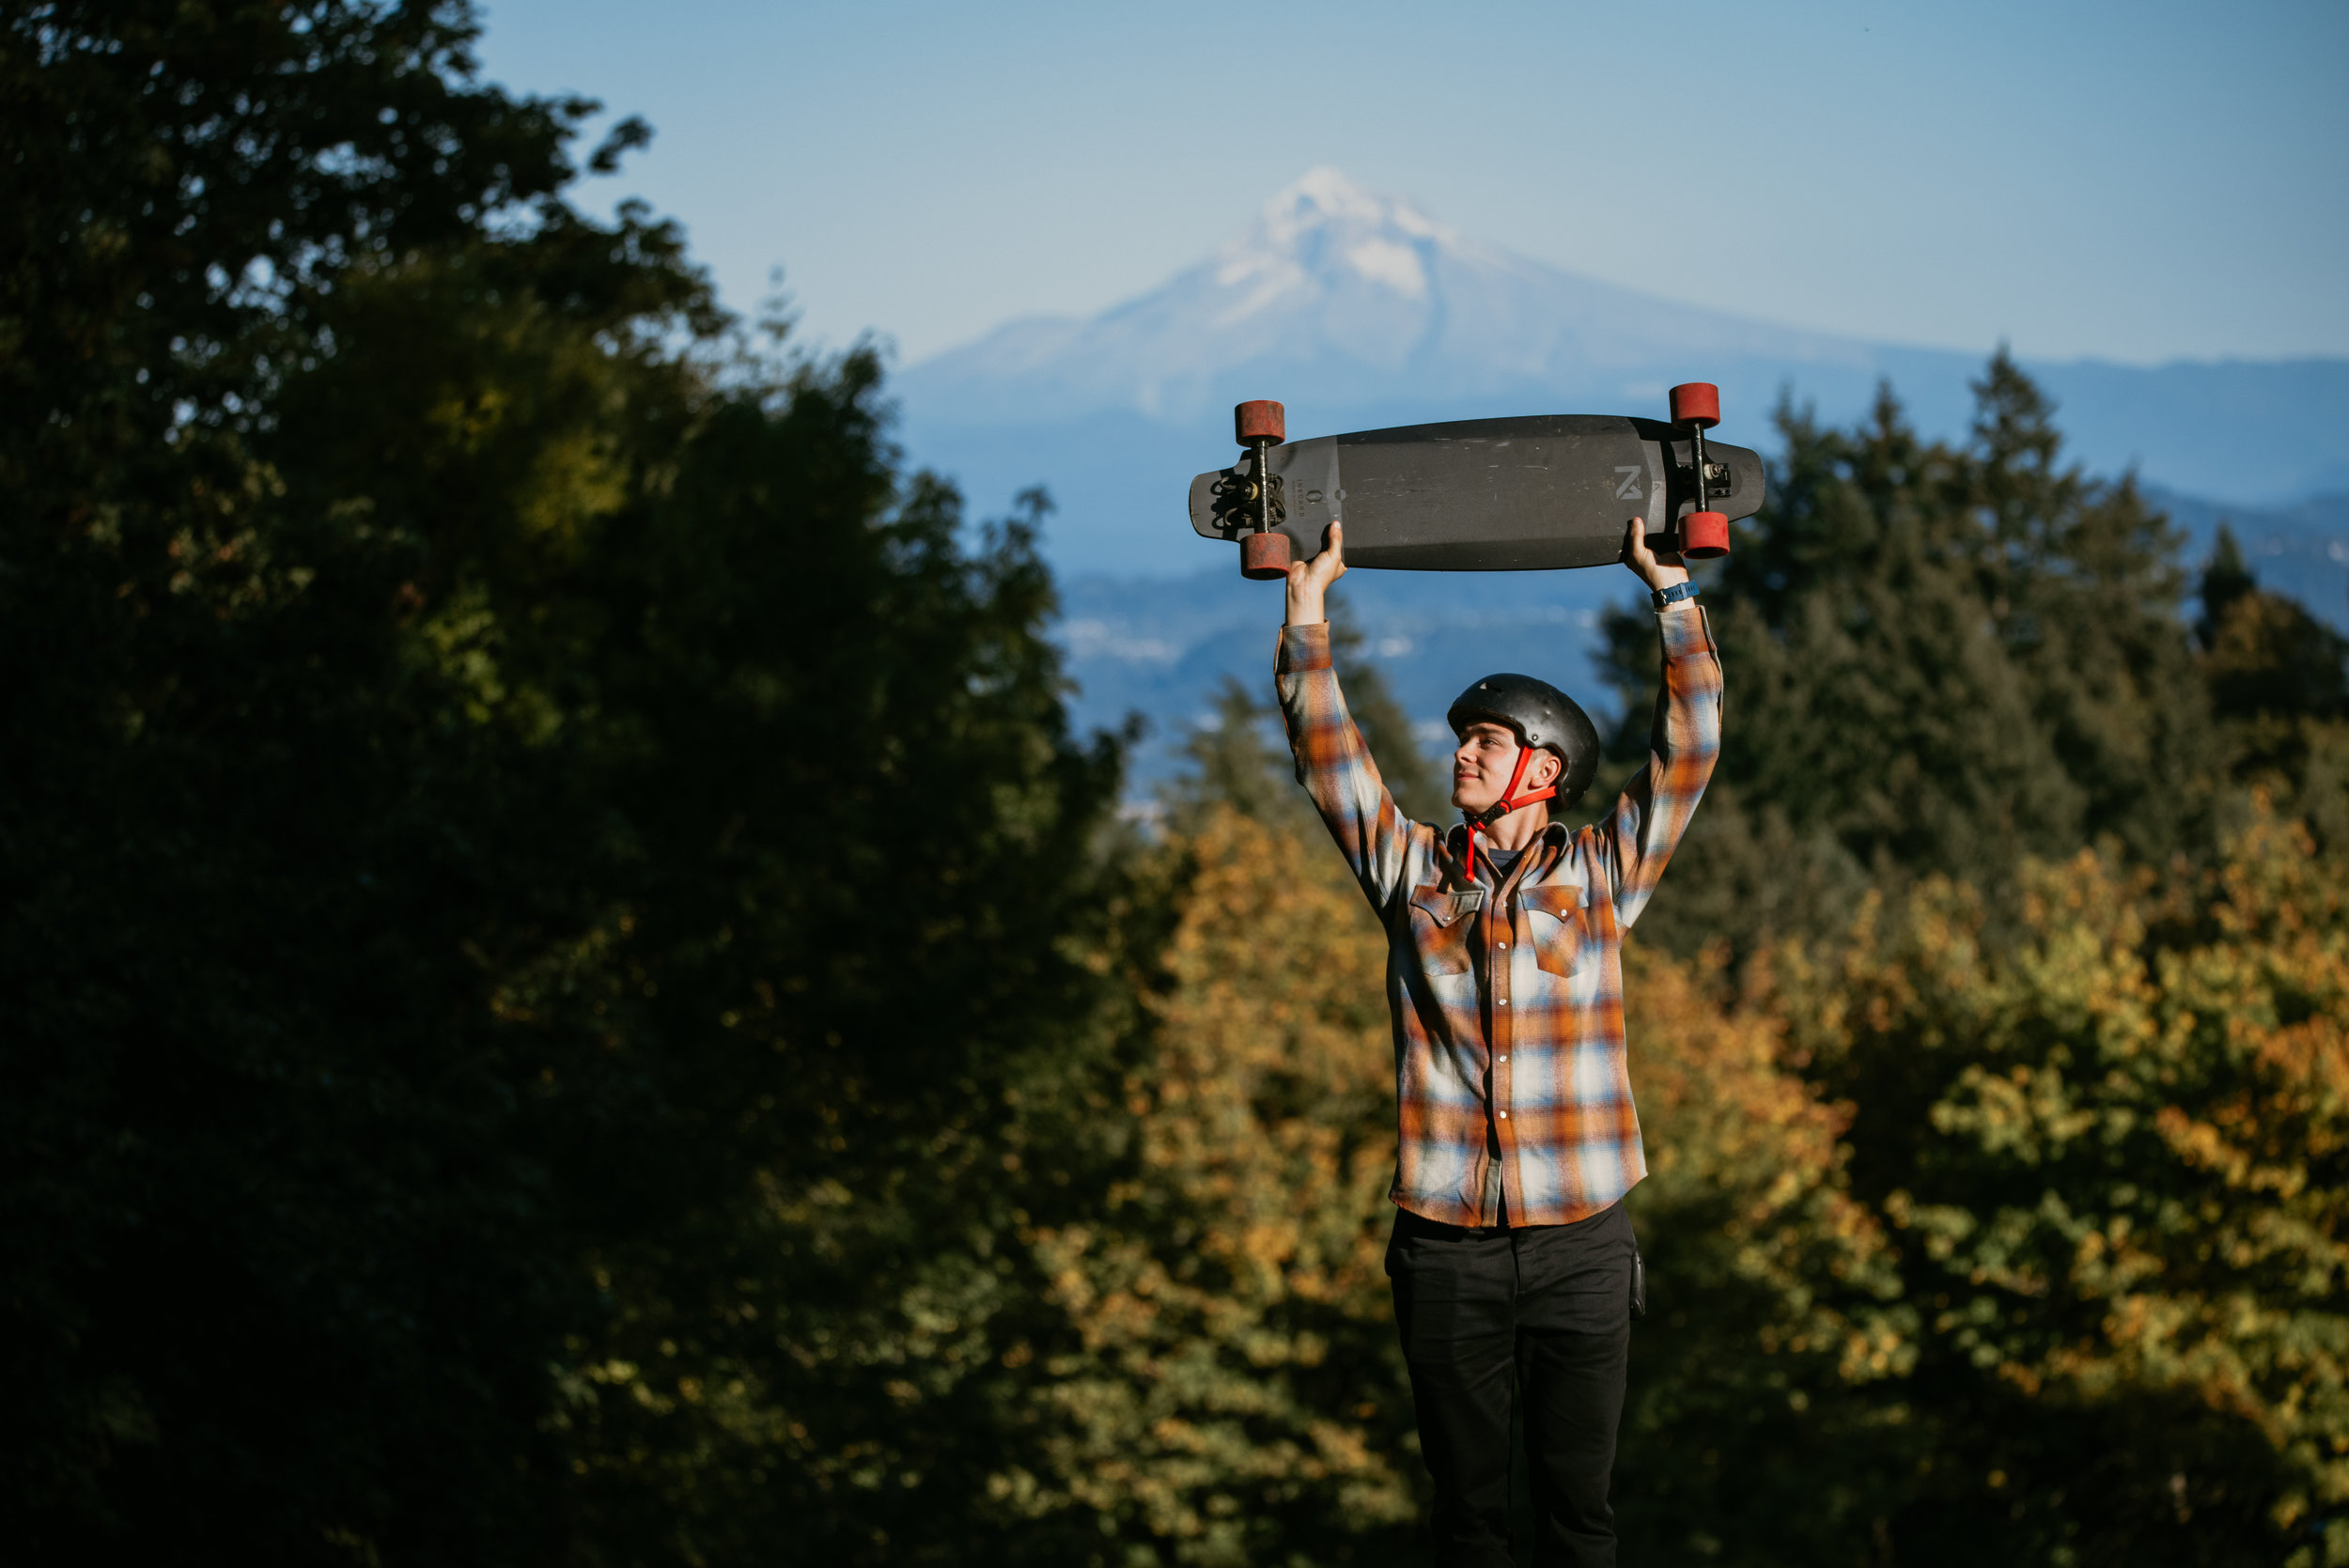 Stunning view of Mt Hood from the top of Portland. Cheers to the Inboard M1 electric longboard for effortlessly powering me up to the top of all these hills!